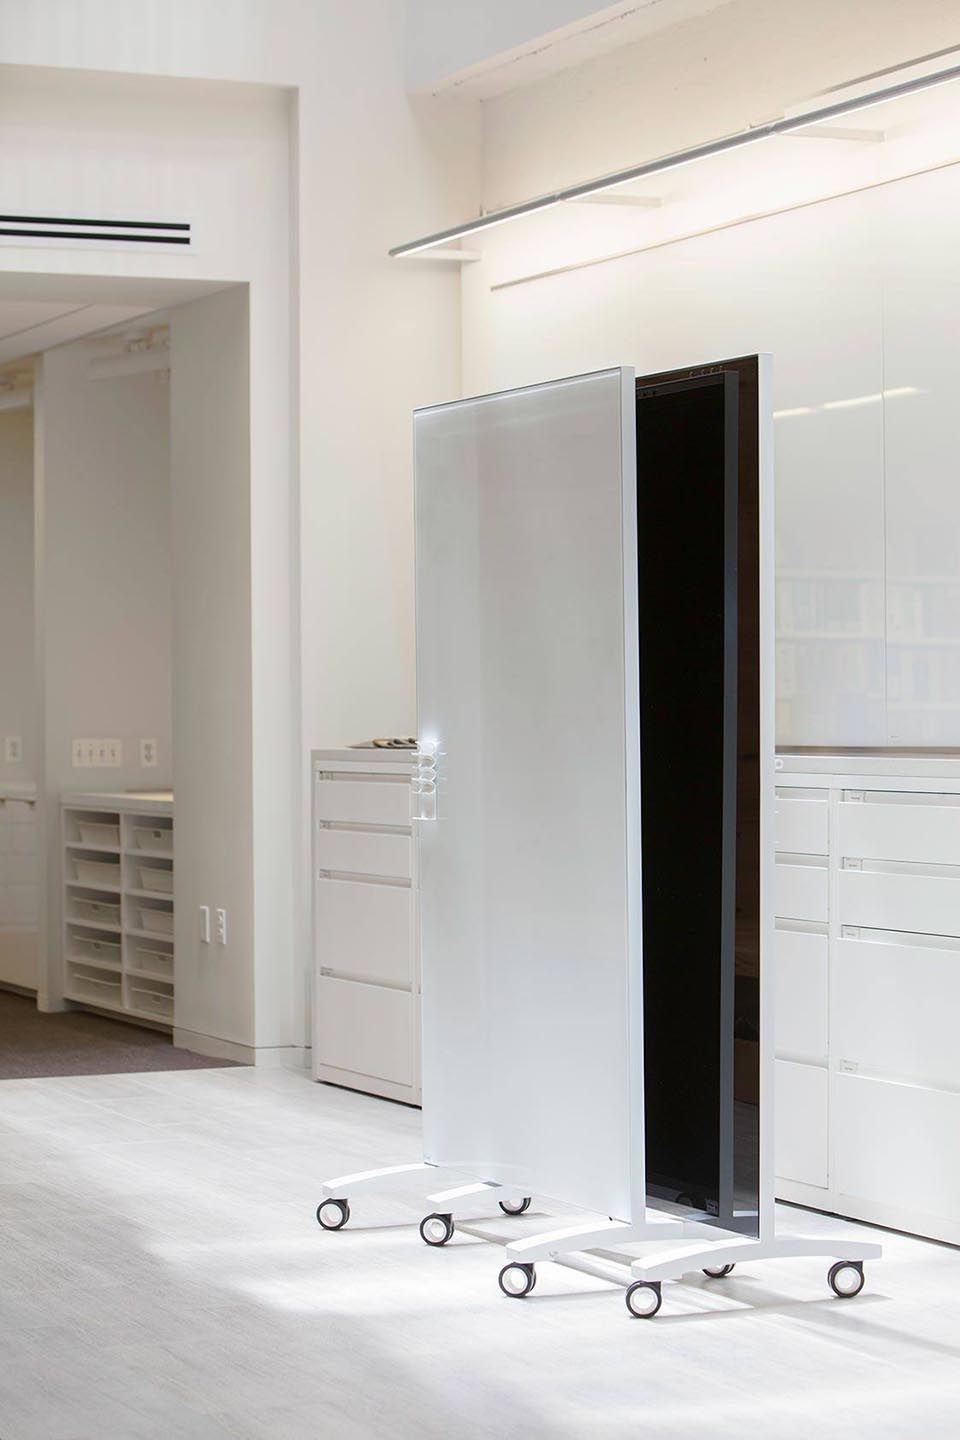 Home Office Sliding Glass Room Dividers Inspirational Gallery: Glass Whiteboard Design & Inspiration Photo Gallery